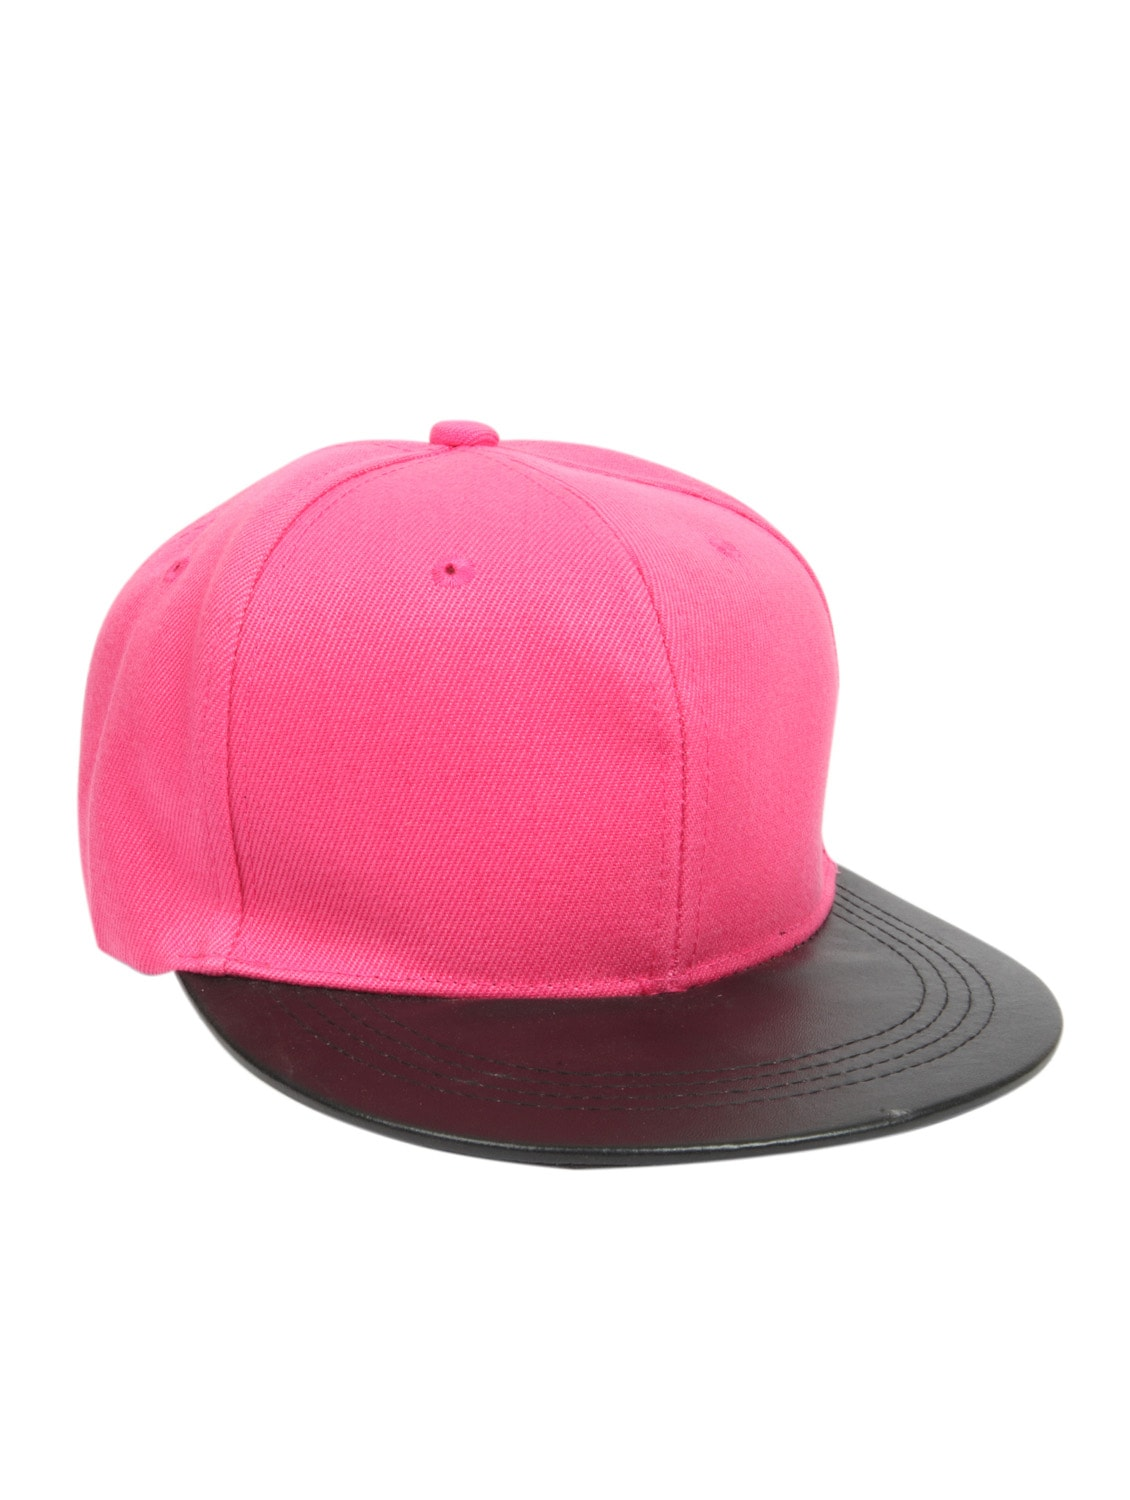 6236d393d2a Buy Ilu Pink Cap For Girls Women Snapback Hiphop Baseball Caps Hats for  Women from Ilu for ₹268 at 79% off